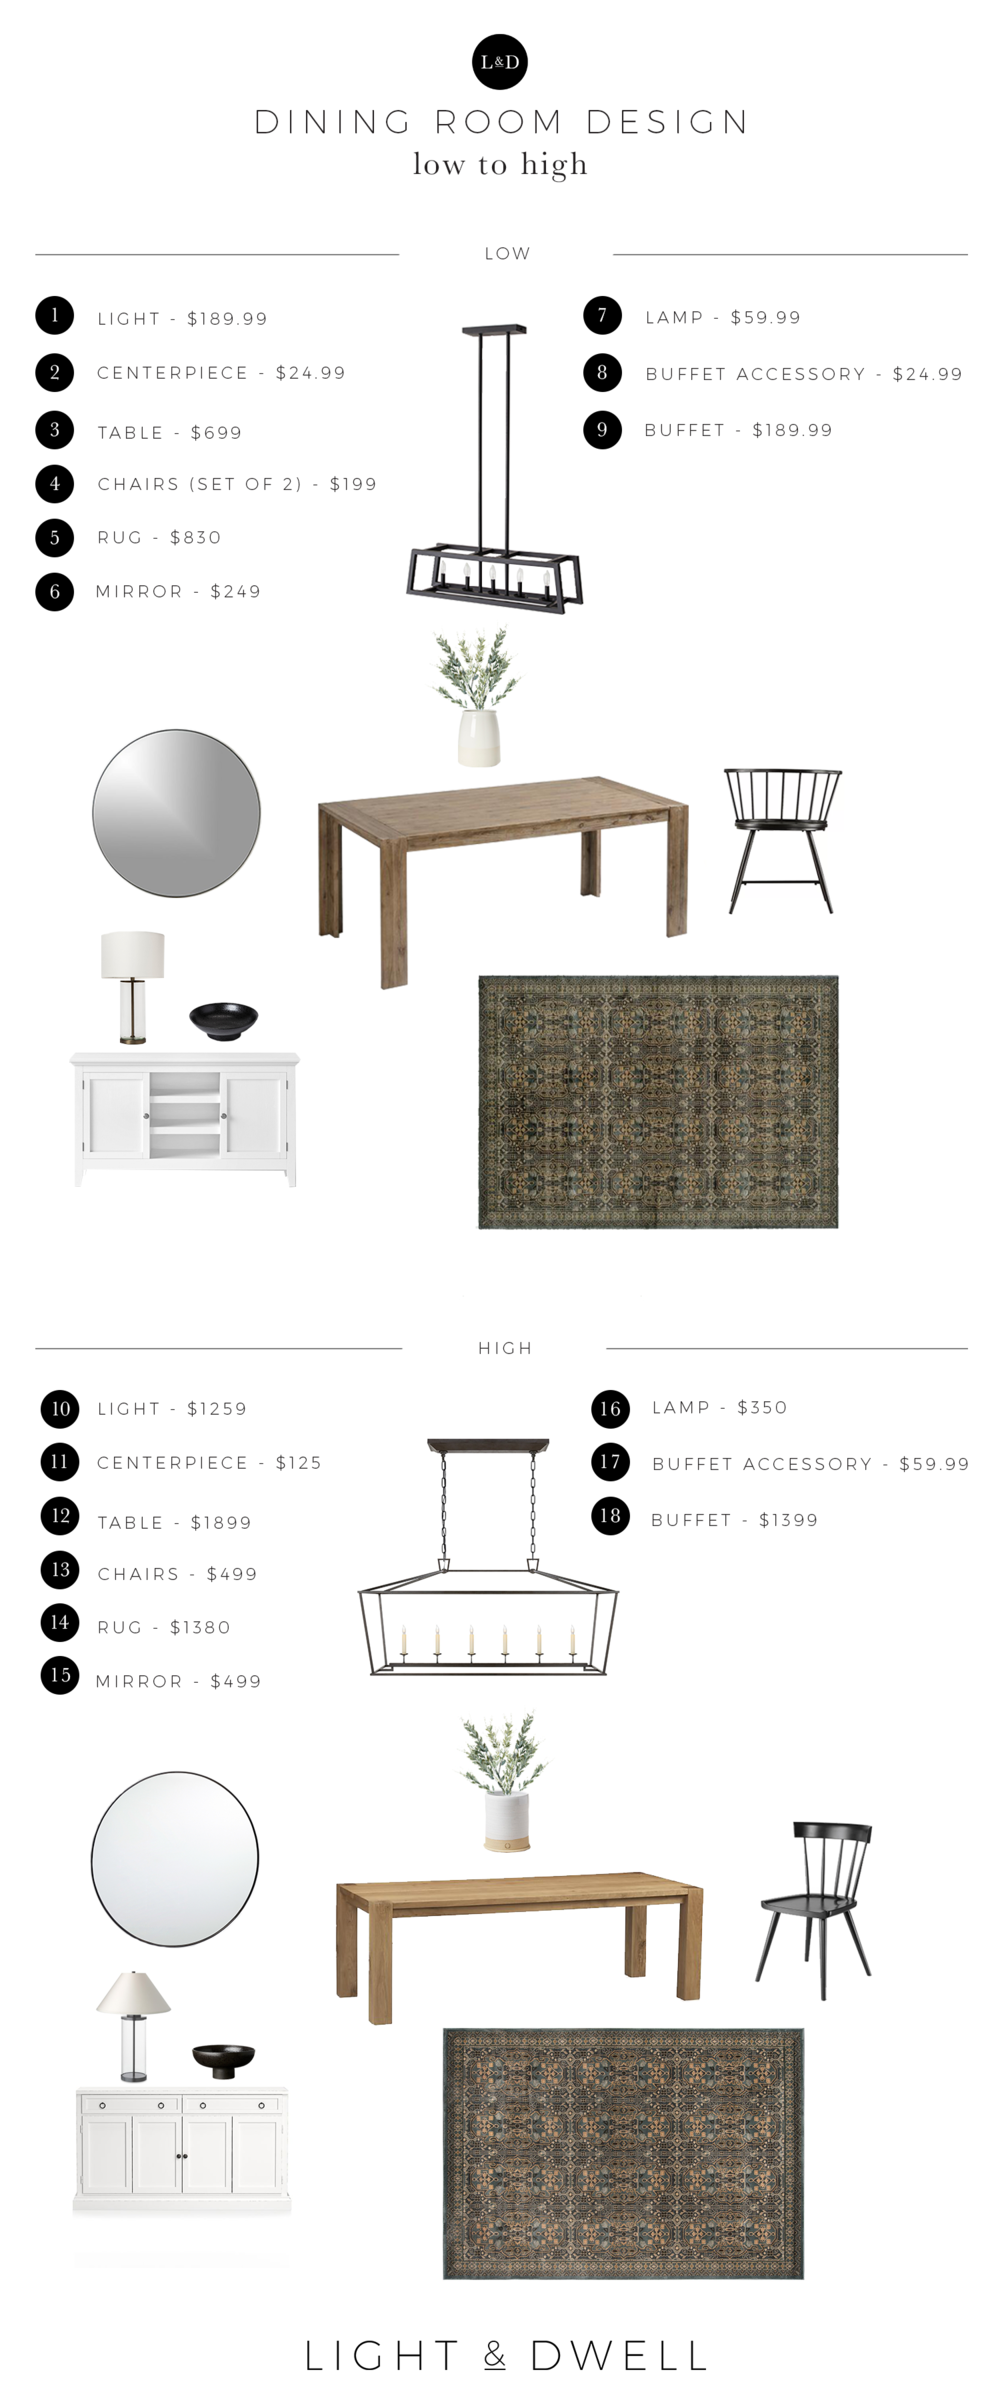 L+D_HighLow_DiningRoomDesign.png